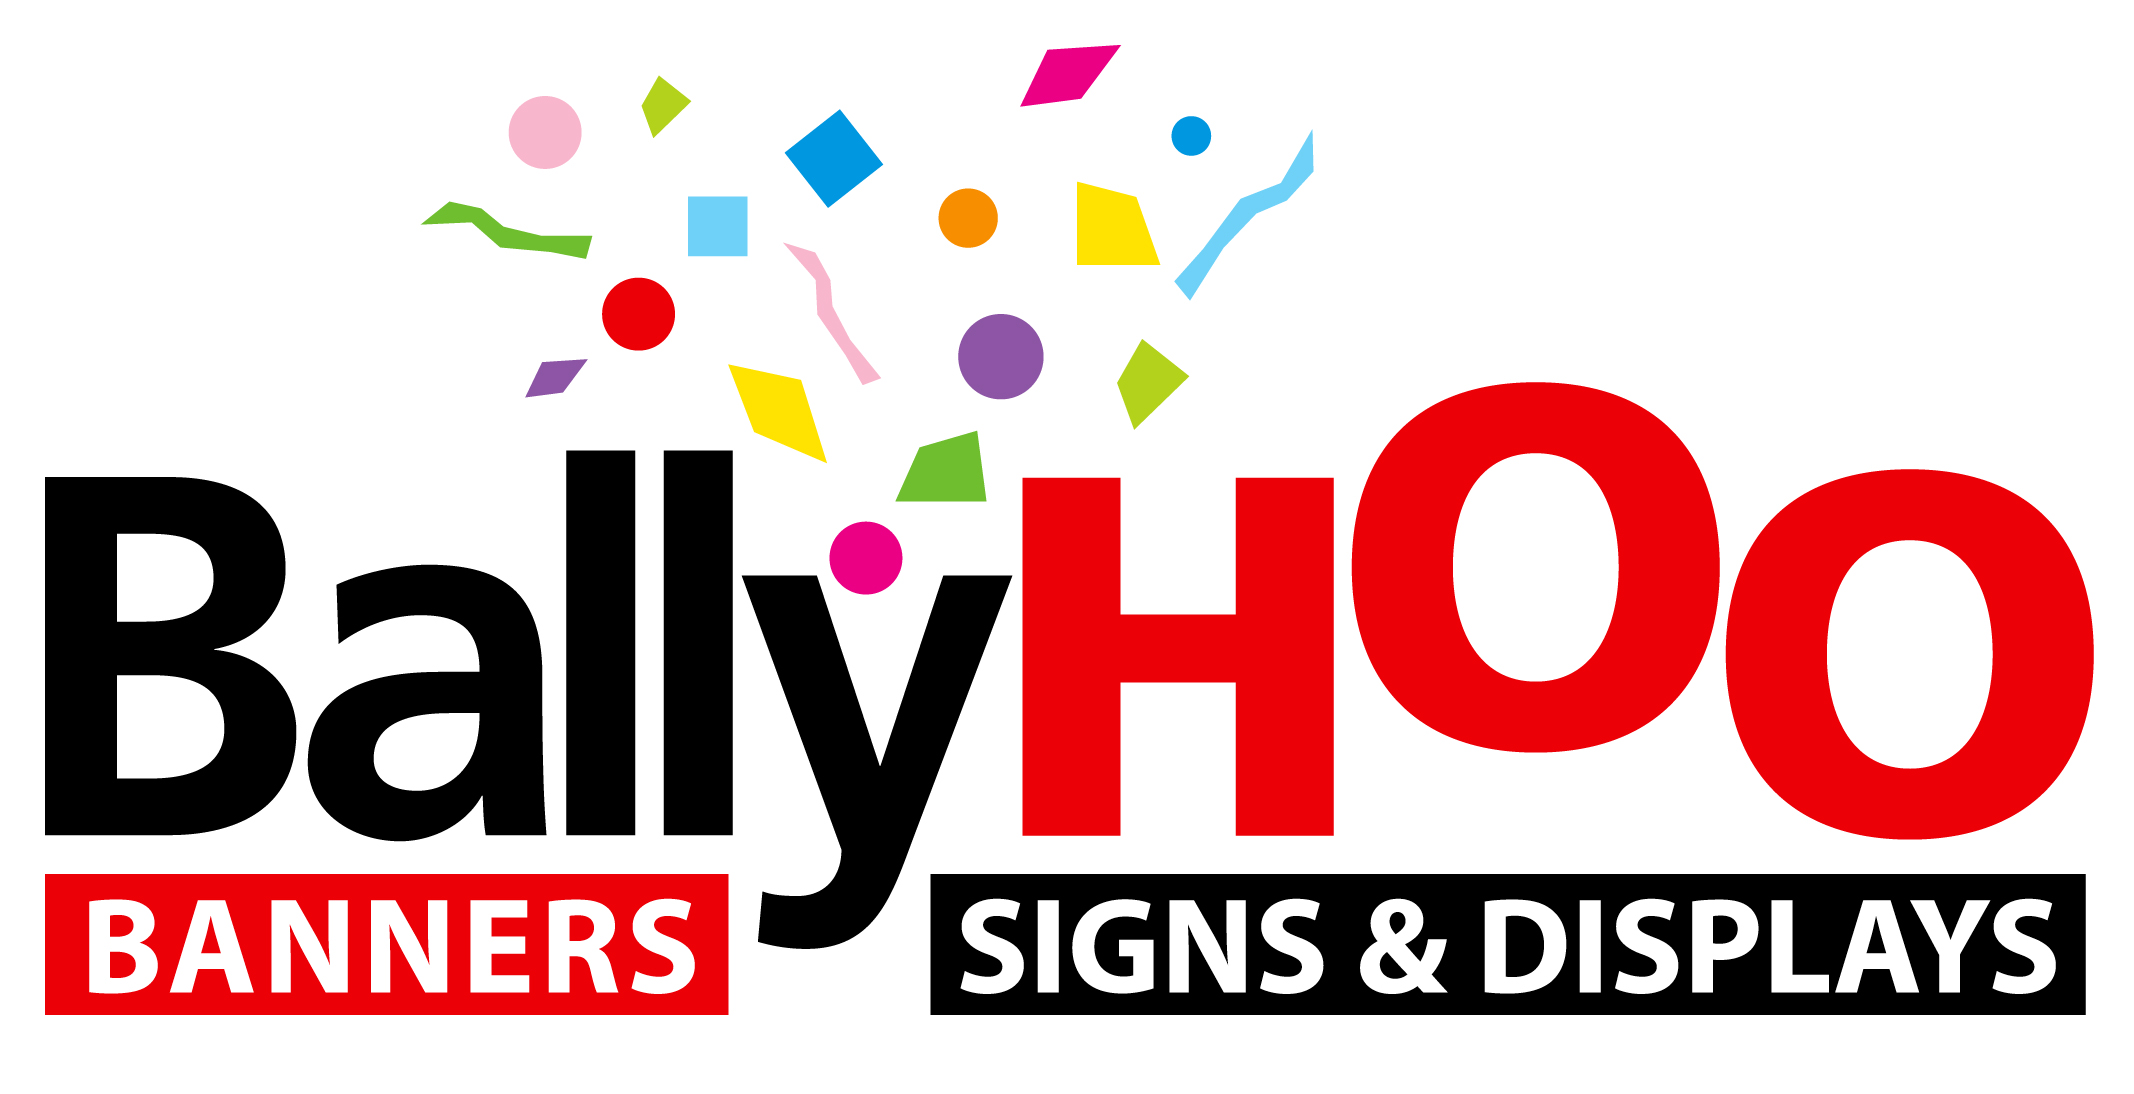 ballyhoo-banners-signs-displays-logo.jpg